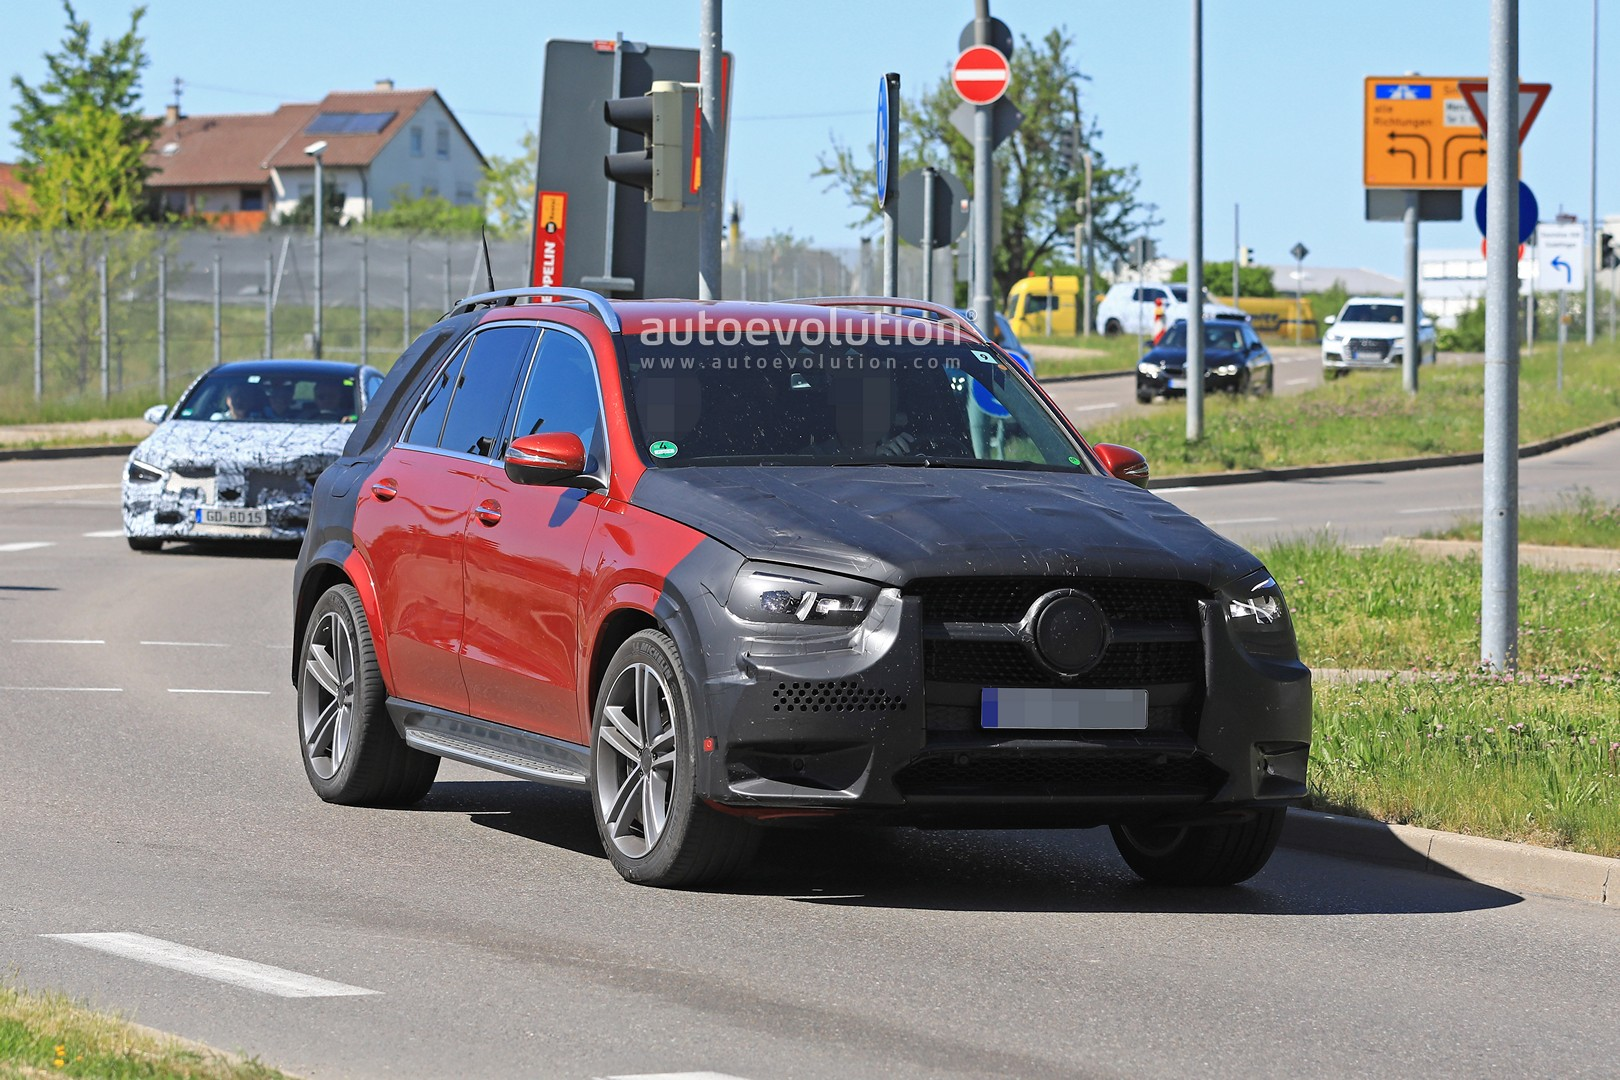 2019 Mercedes Benz Gle 350 D Or 400 D With Amg Line Body Kit Spied